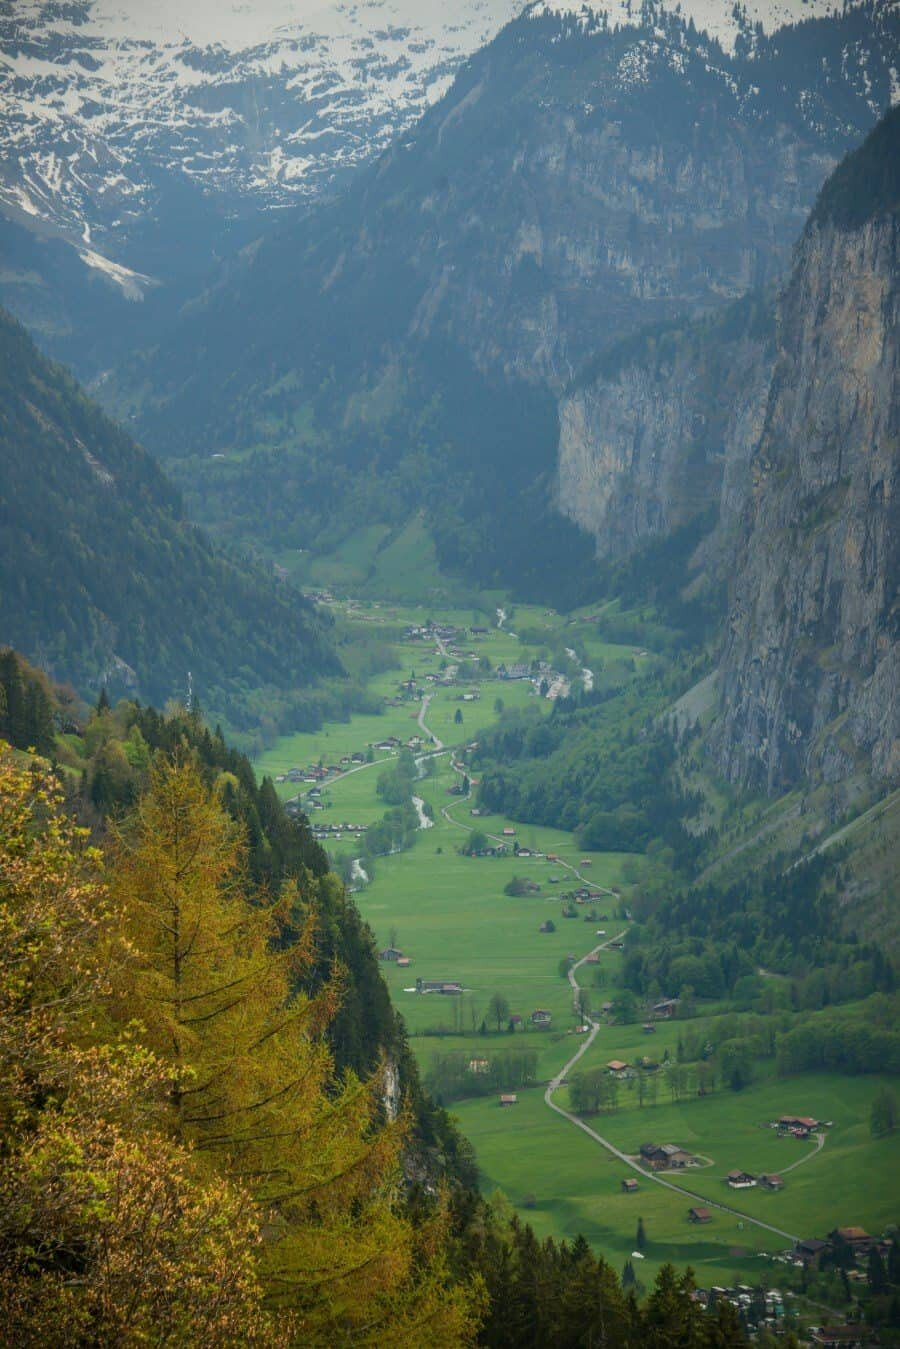 jungfrau-travel-guide-wengen-lauterbrunnen-and-grindelwald-by-the-wandering-lens-06